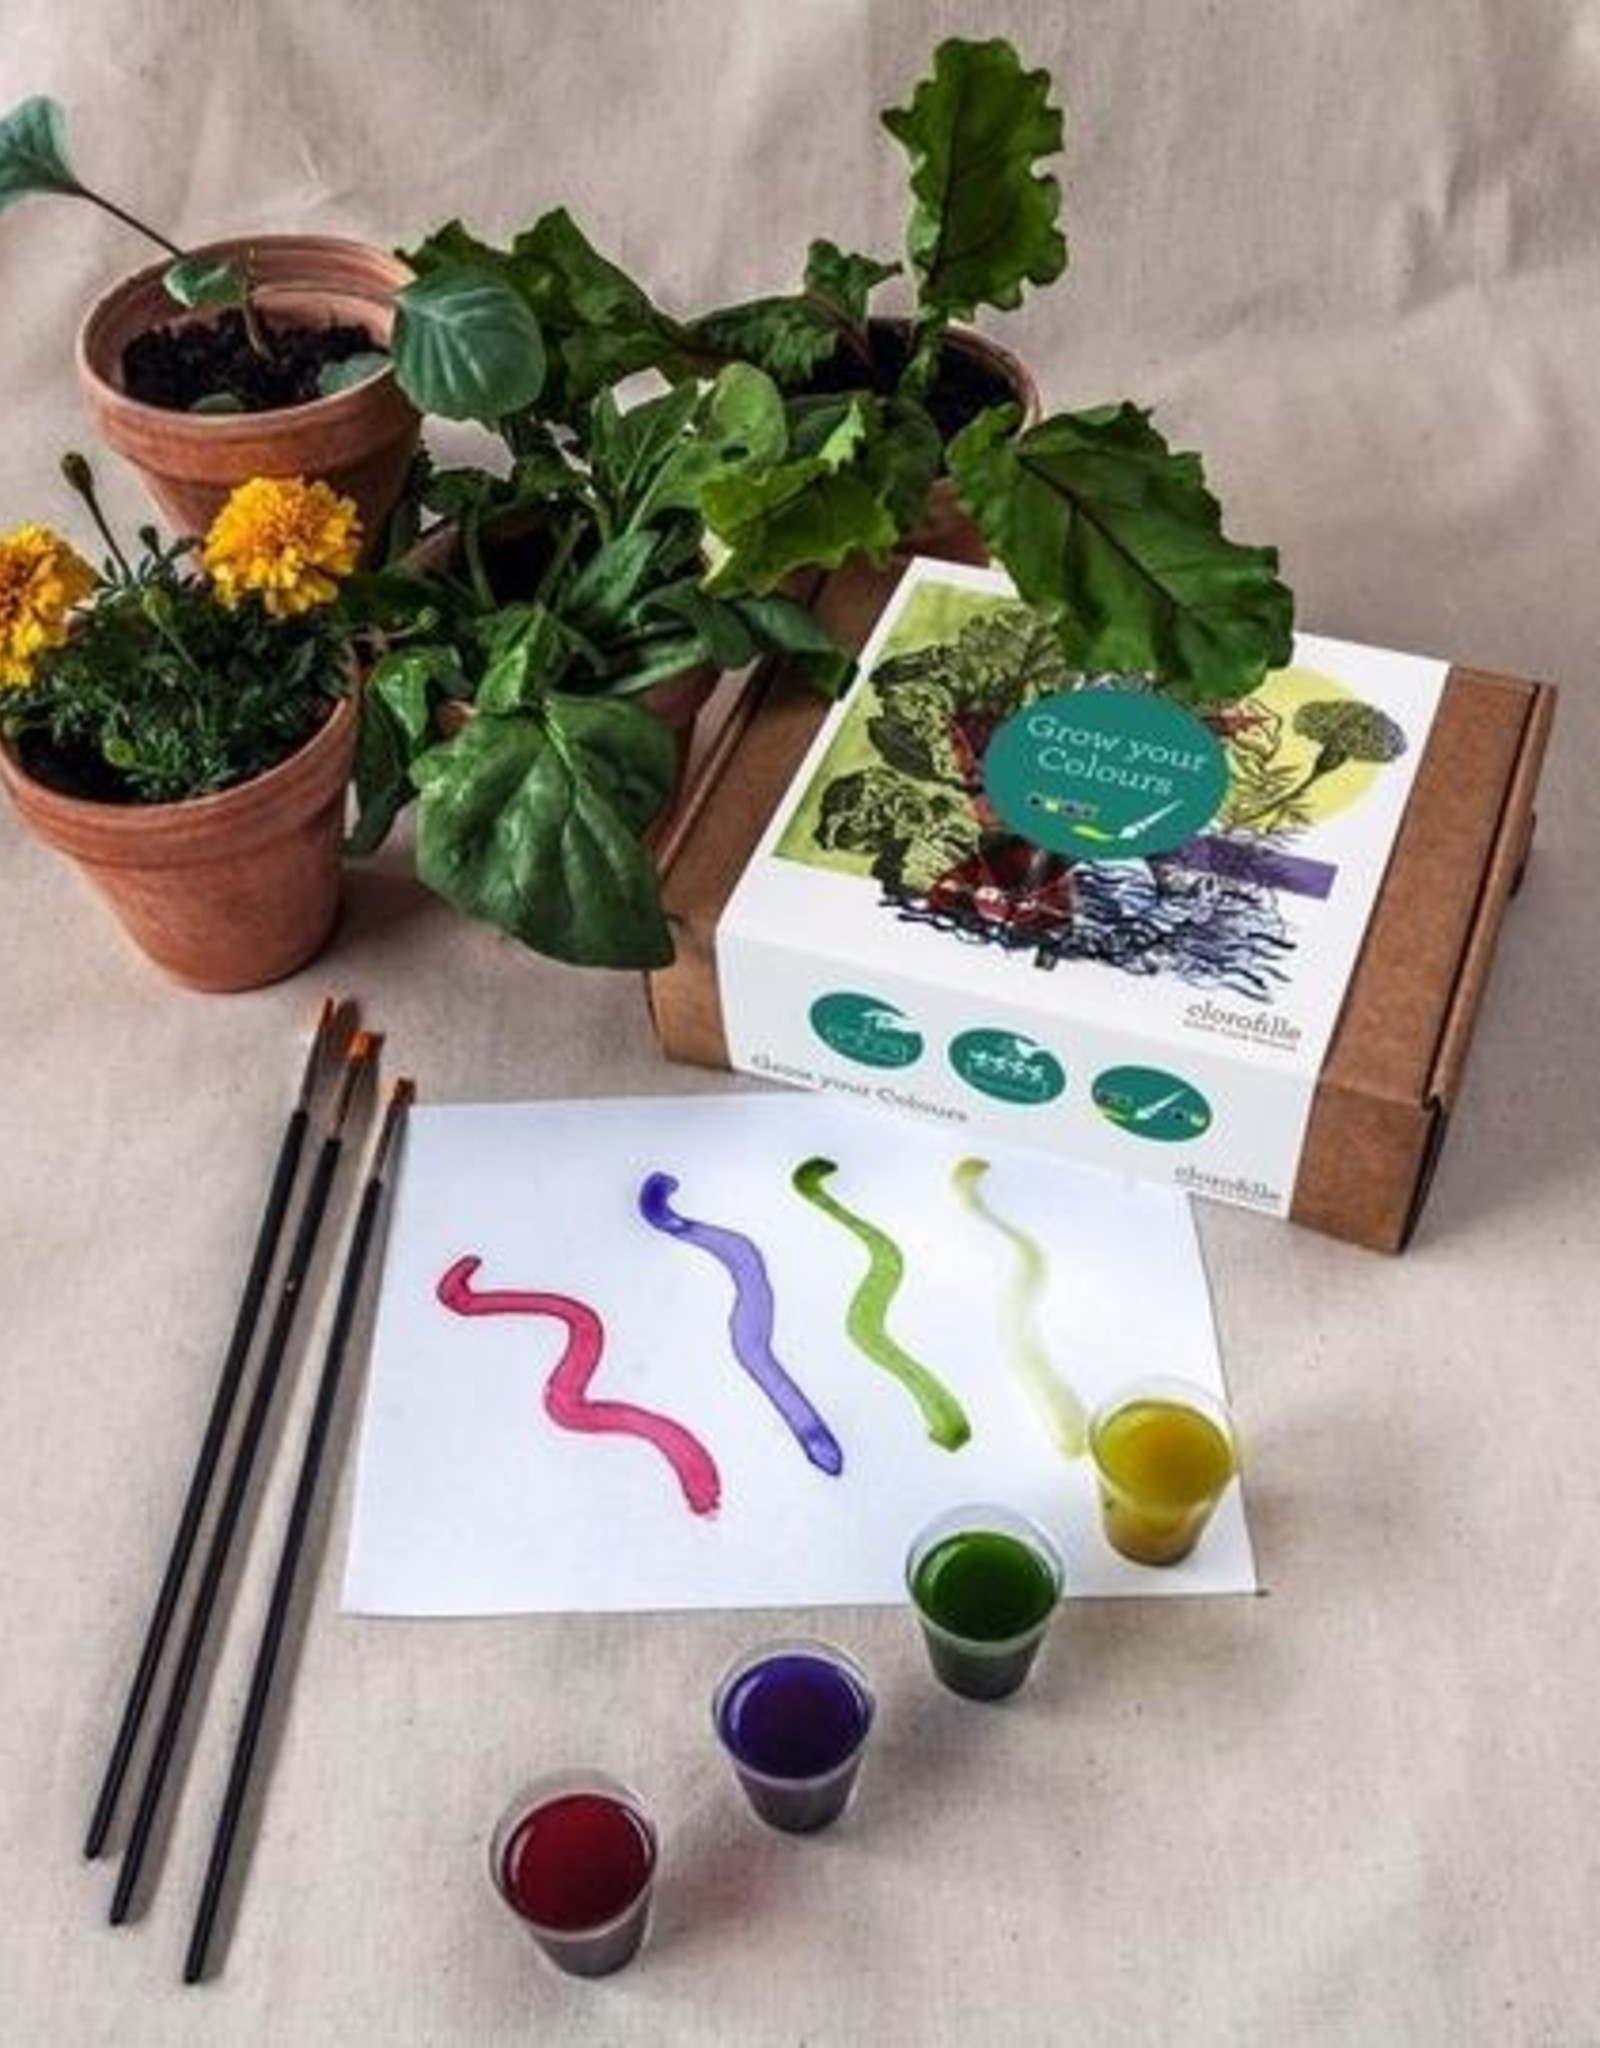 Jiminy Eco Toys Grow your own paints